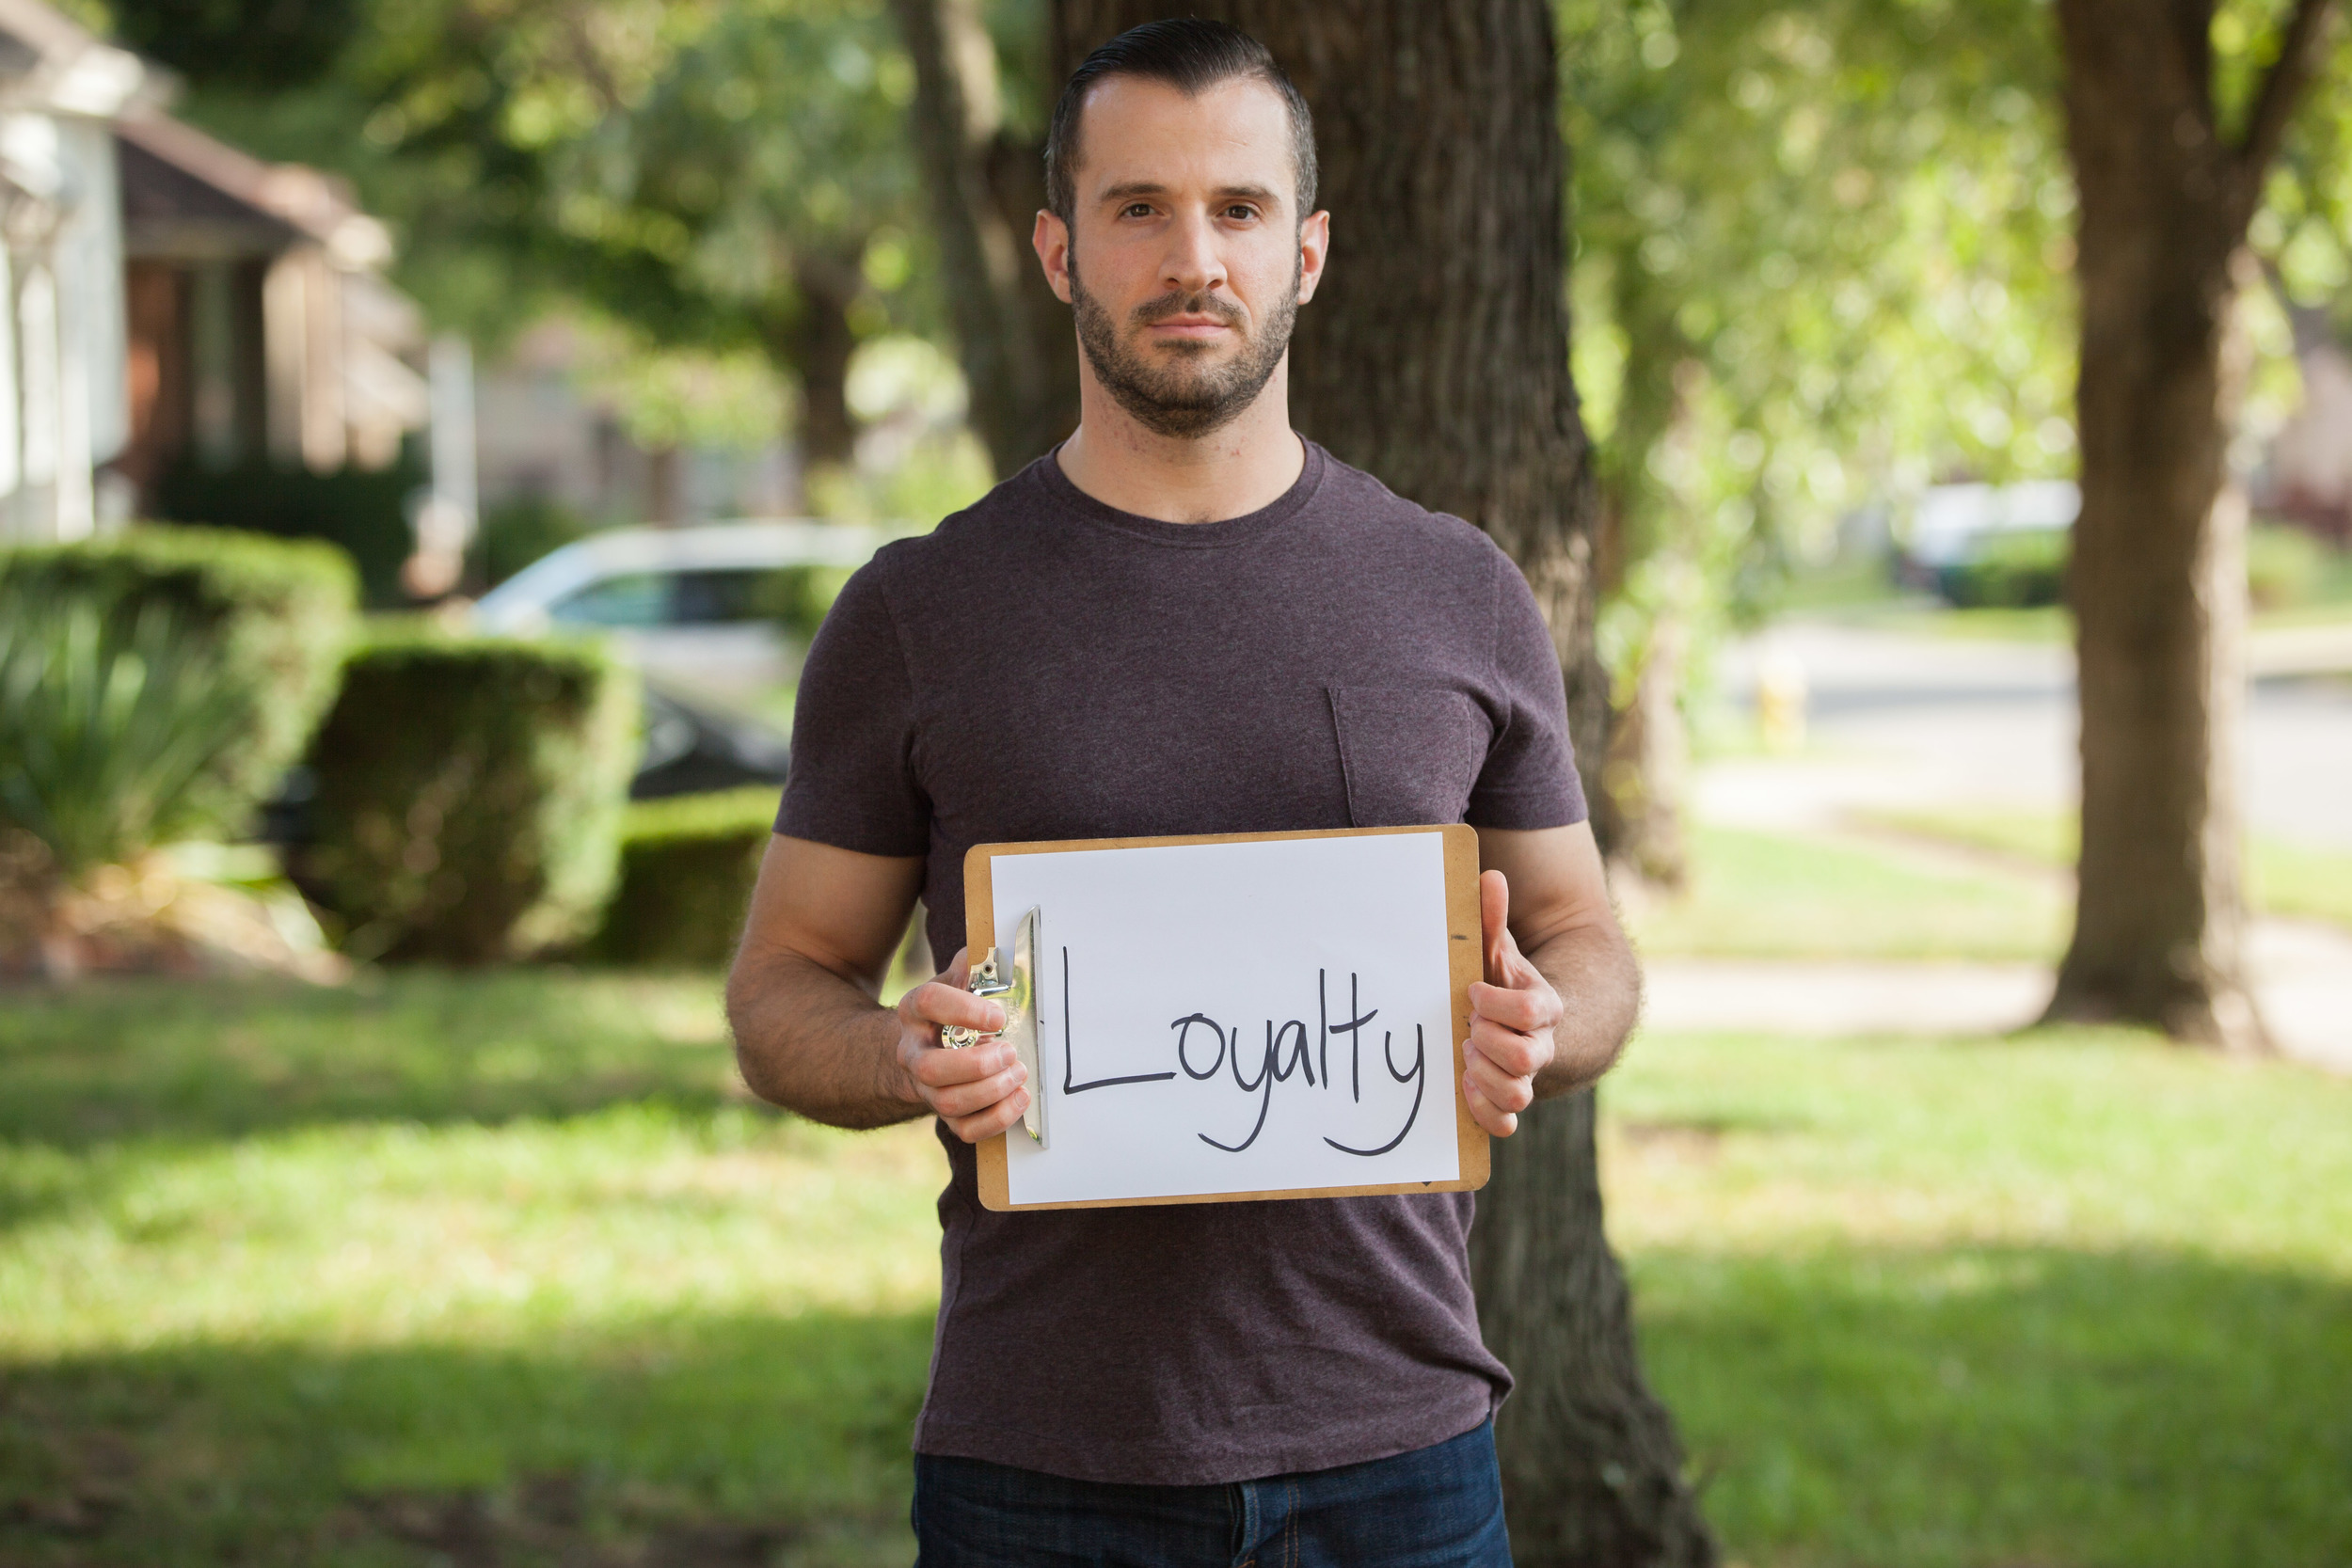 Man standing outside holding a sign that says loyalty.